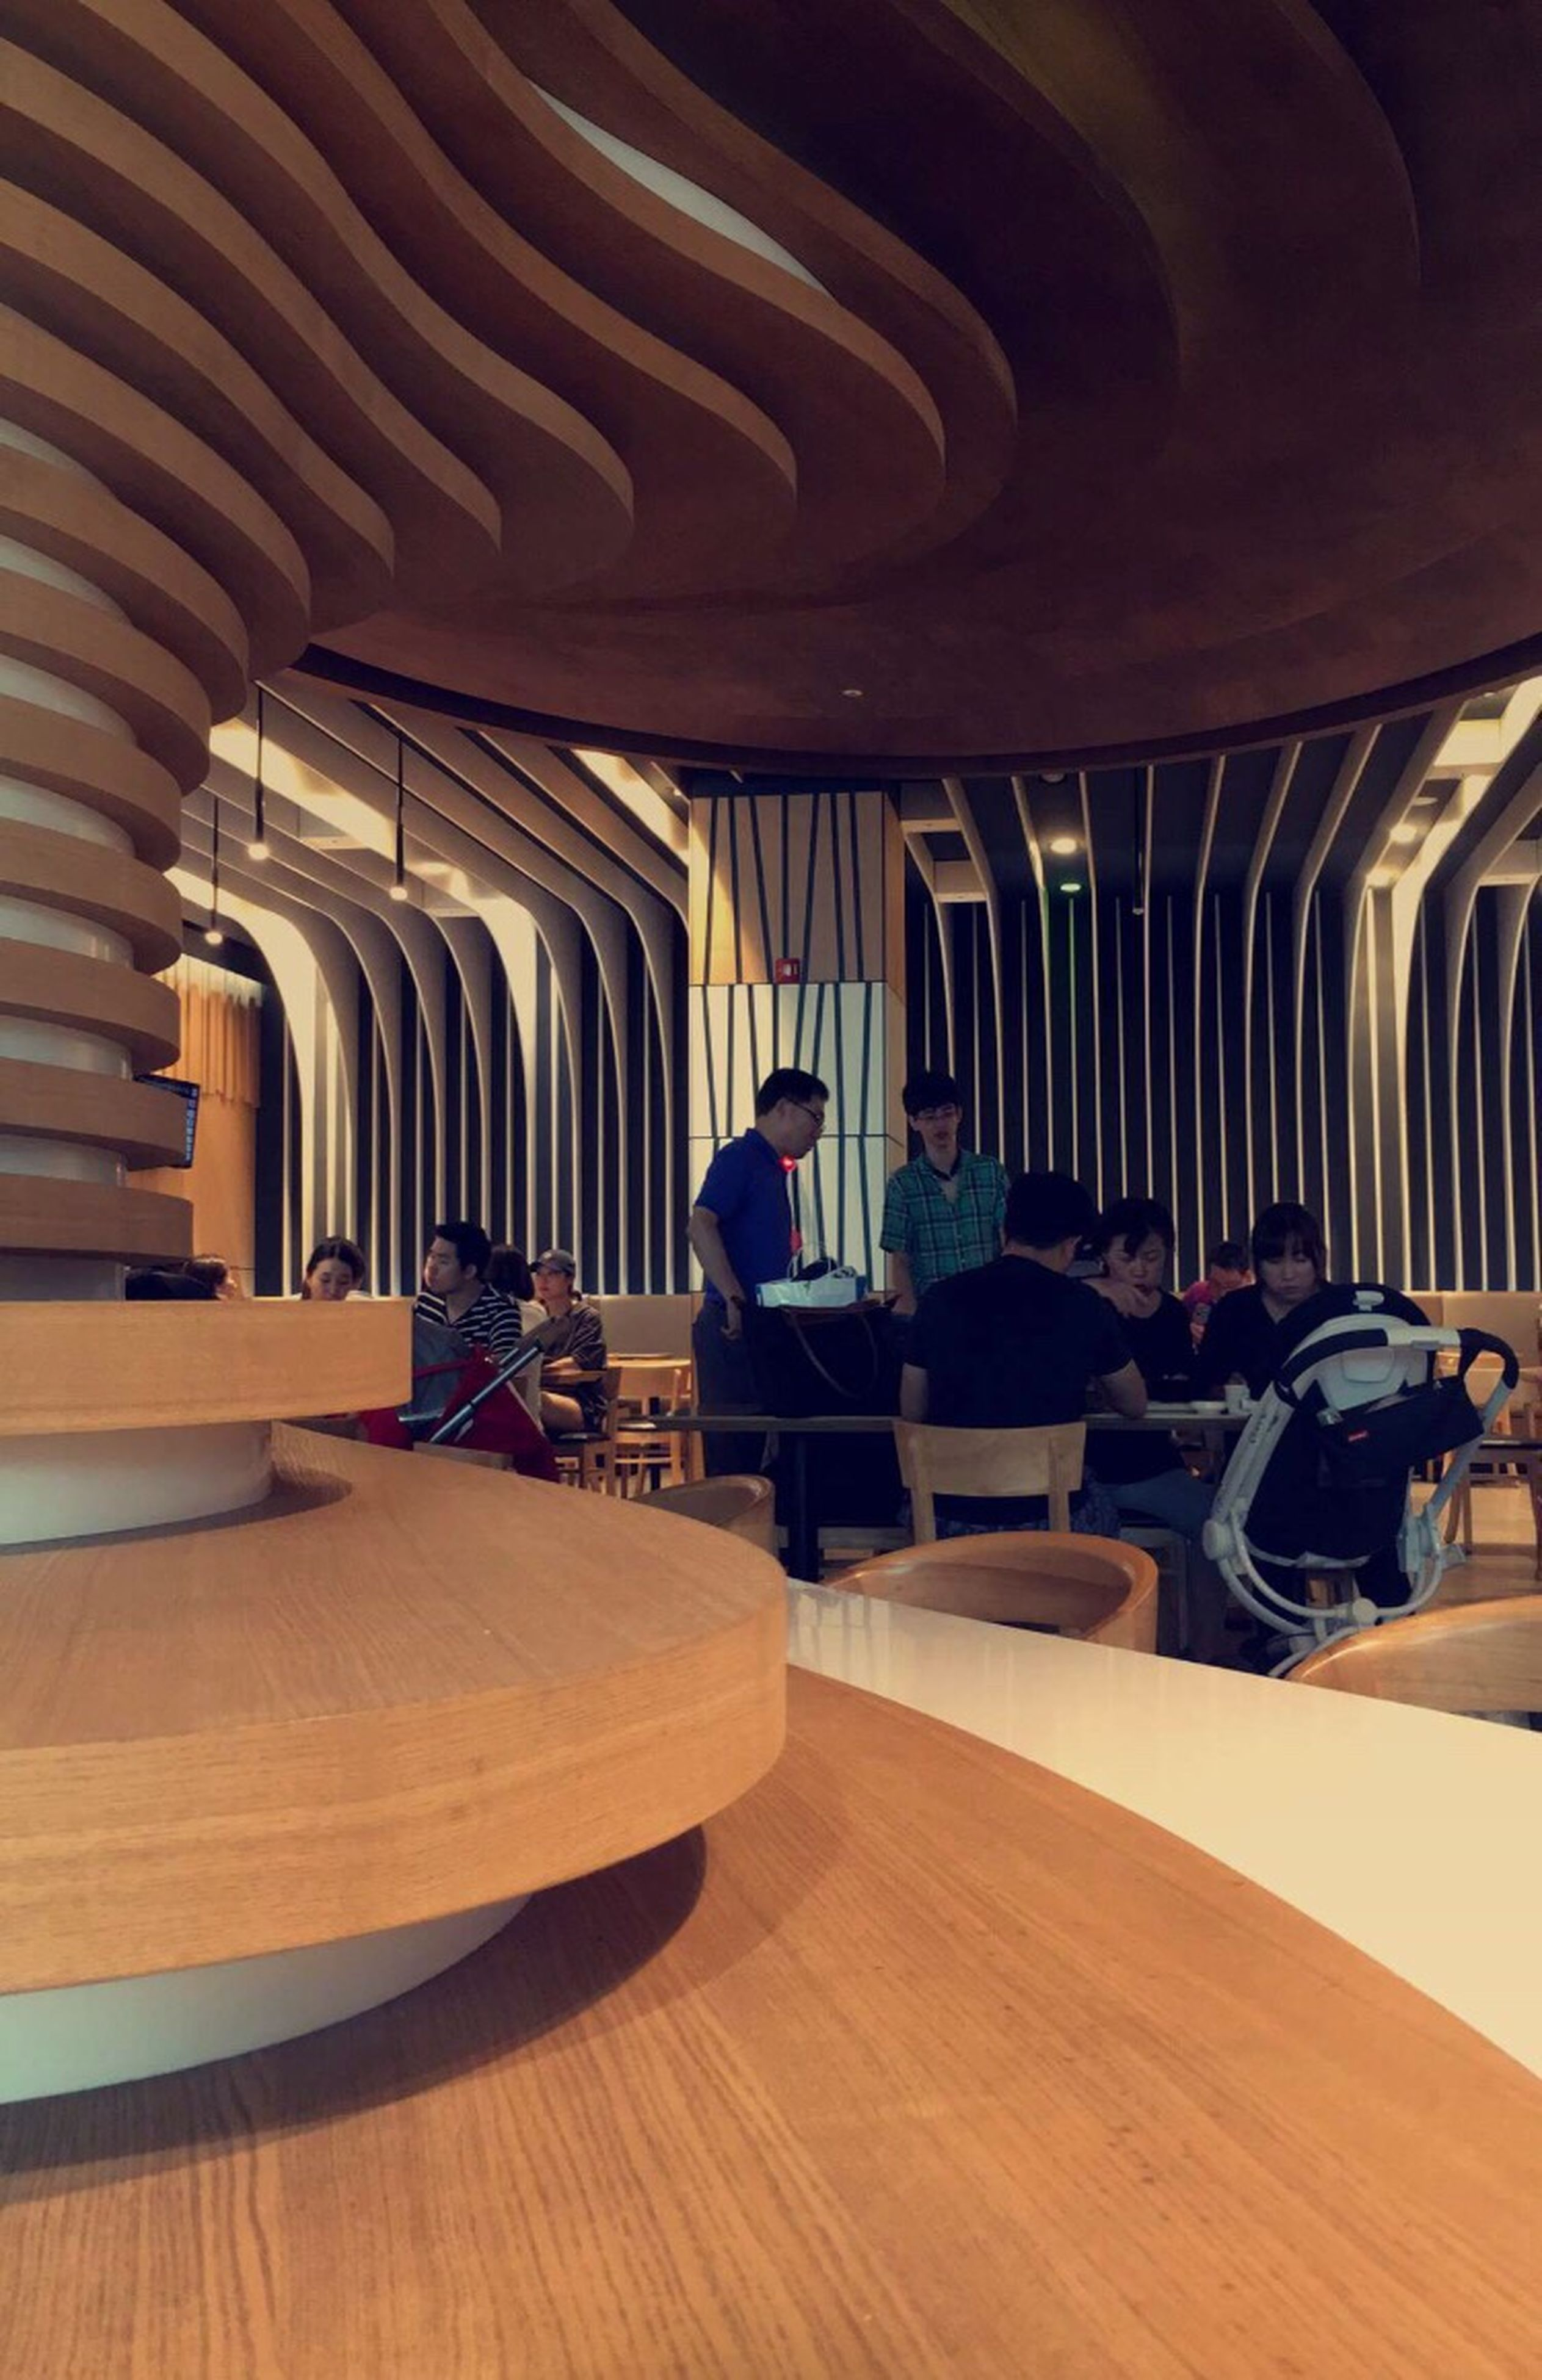 indoors, arch, table, wood - material, architecture, chair, built structure, sitting, seat, illuminated, real people, day